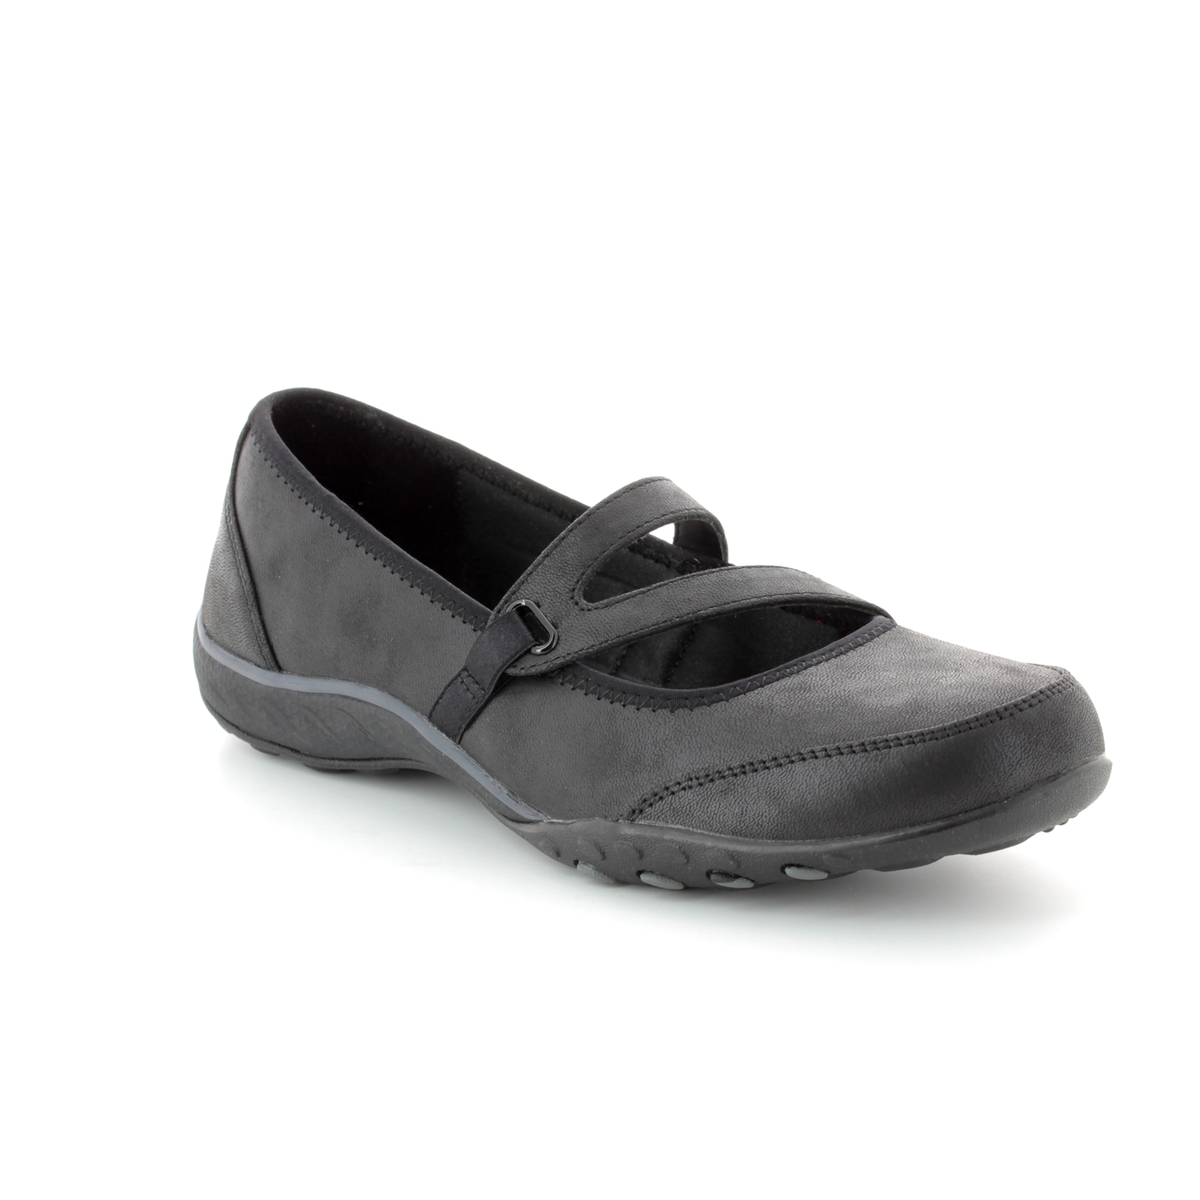 Skechers Calmly 23209 BBK Black Mary Jane Shoes ca15557747bb